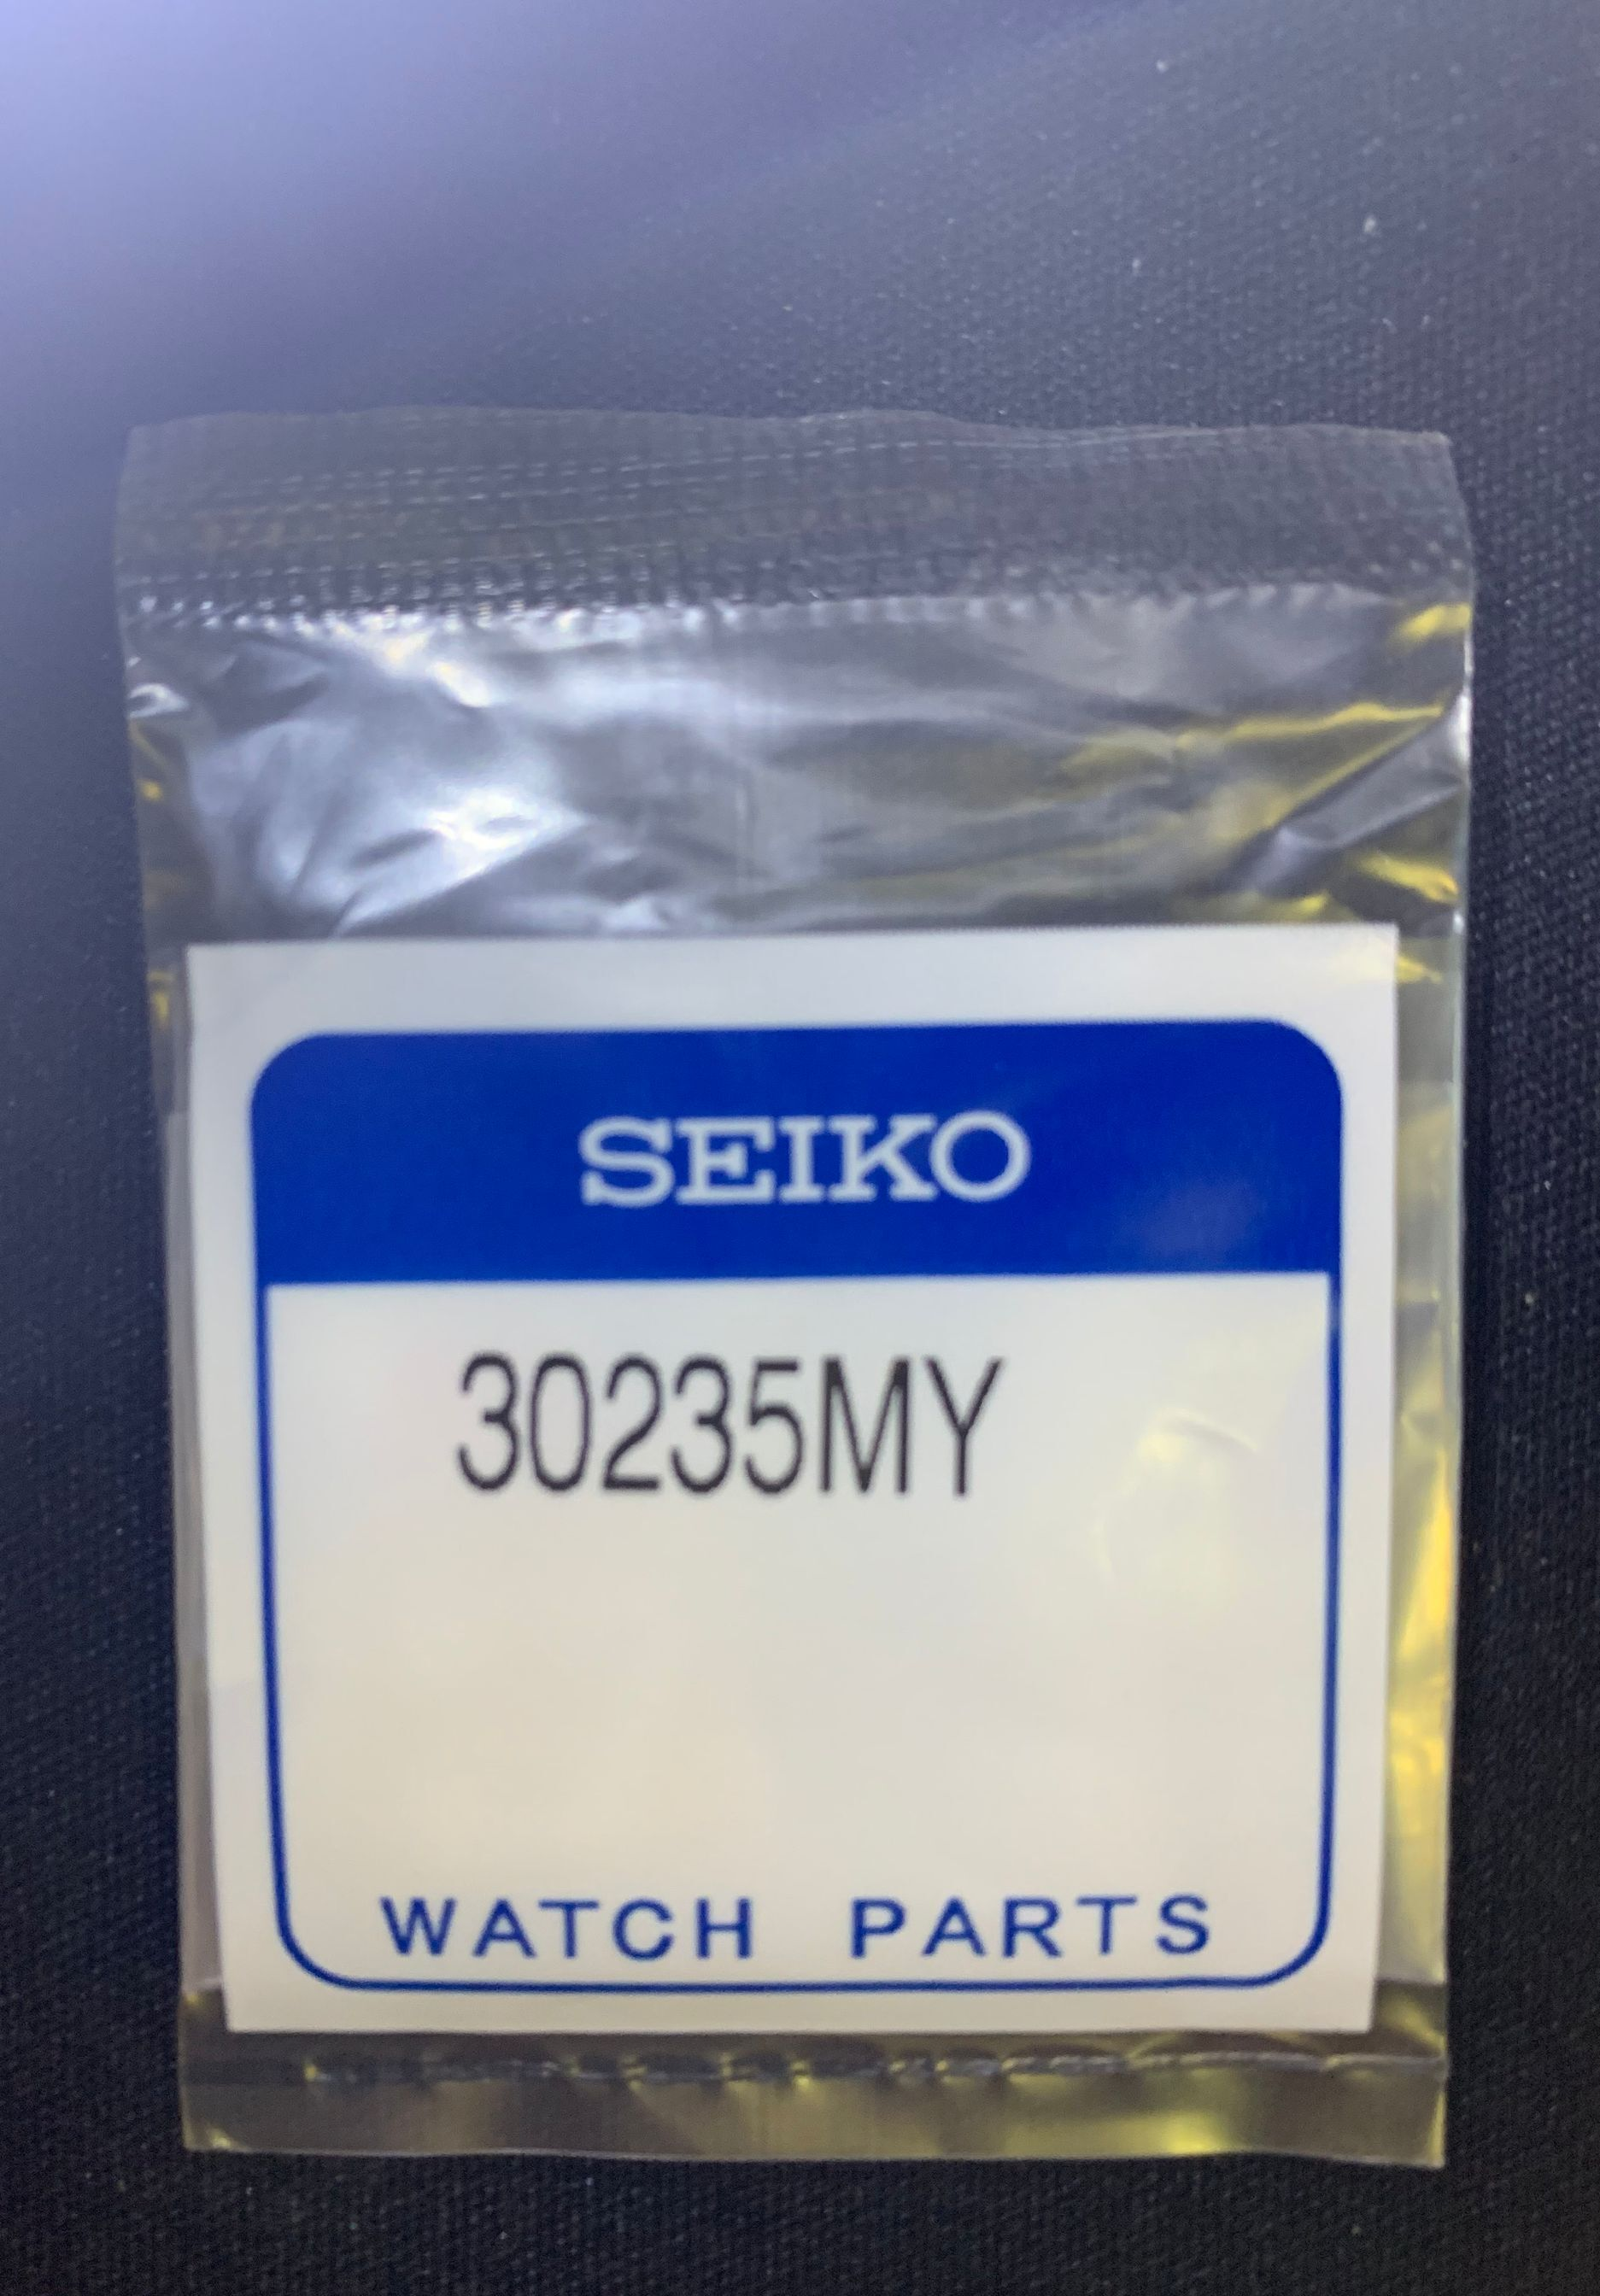 1pcs/lot 3023-5MZ  30235MY 30235MY  3023-5MY  TC920S  Watch Dedicated Artificial Kinetic Energy Rechargeable Battery  Original